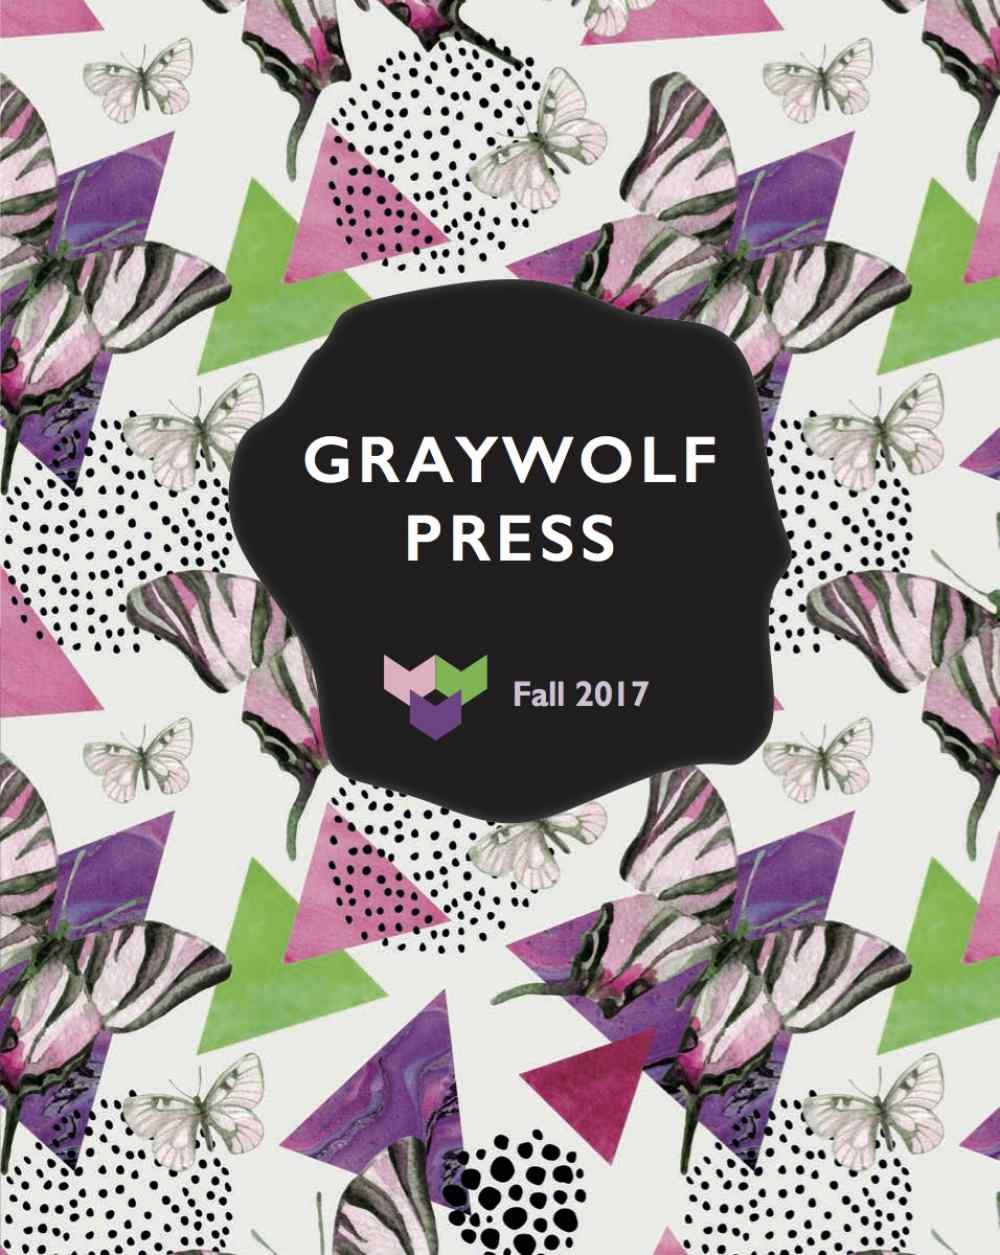 Fall 2017 Graywolf Press Catalog Cover